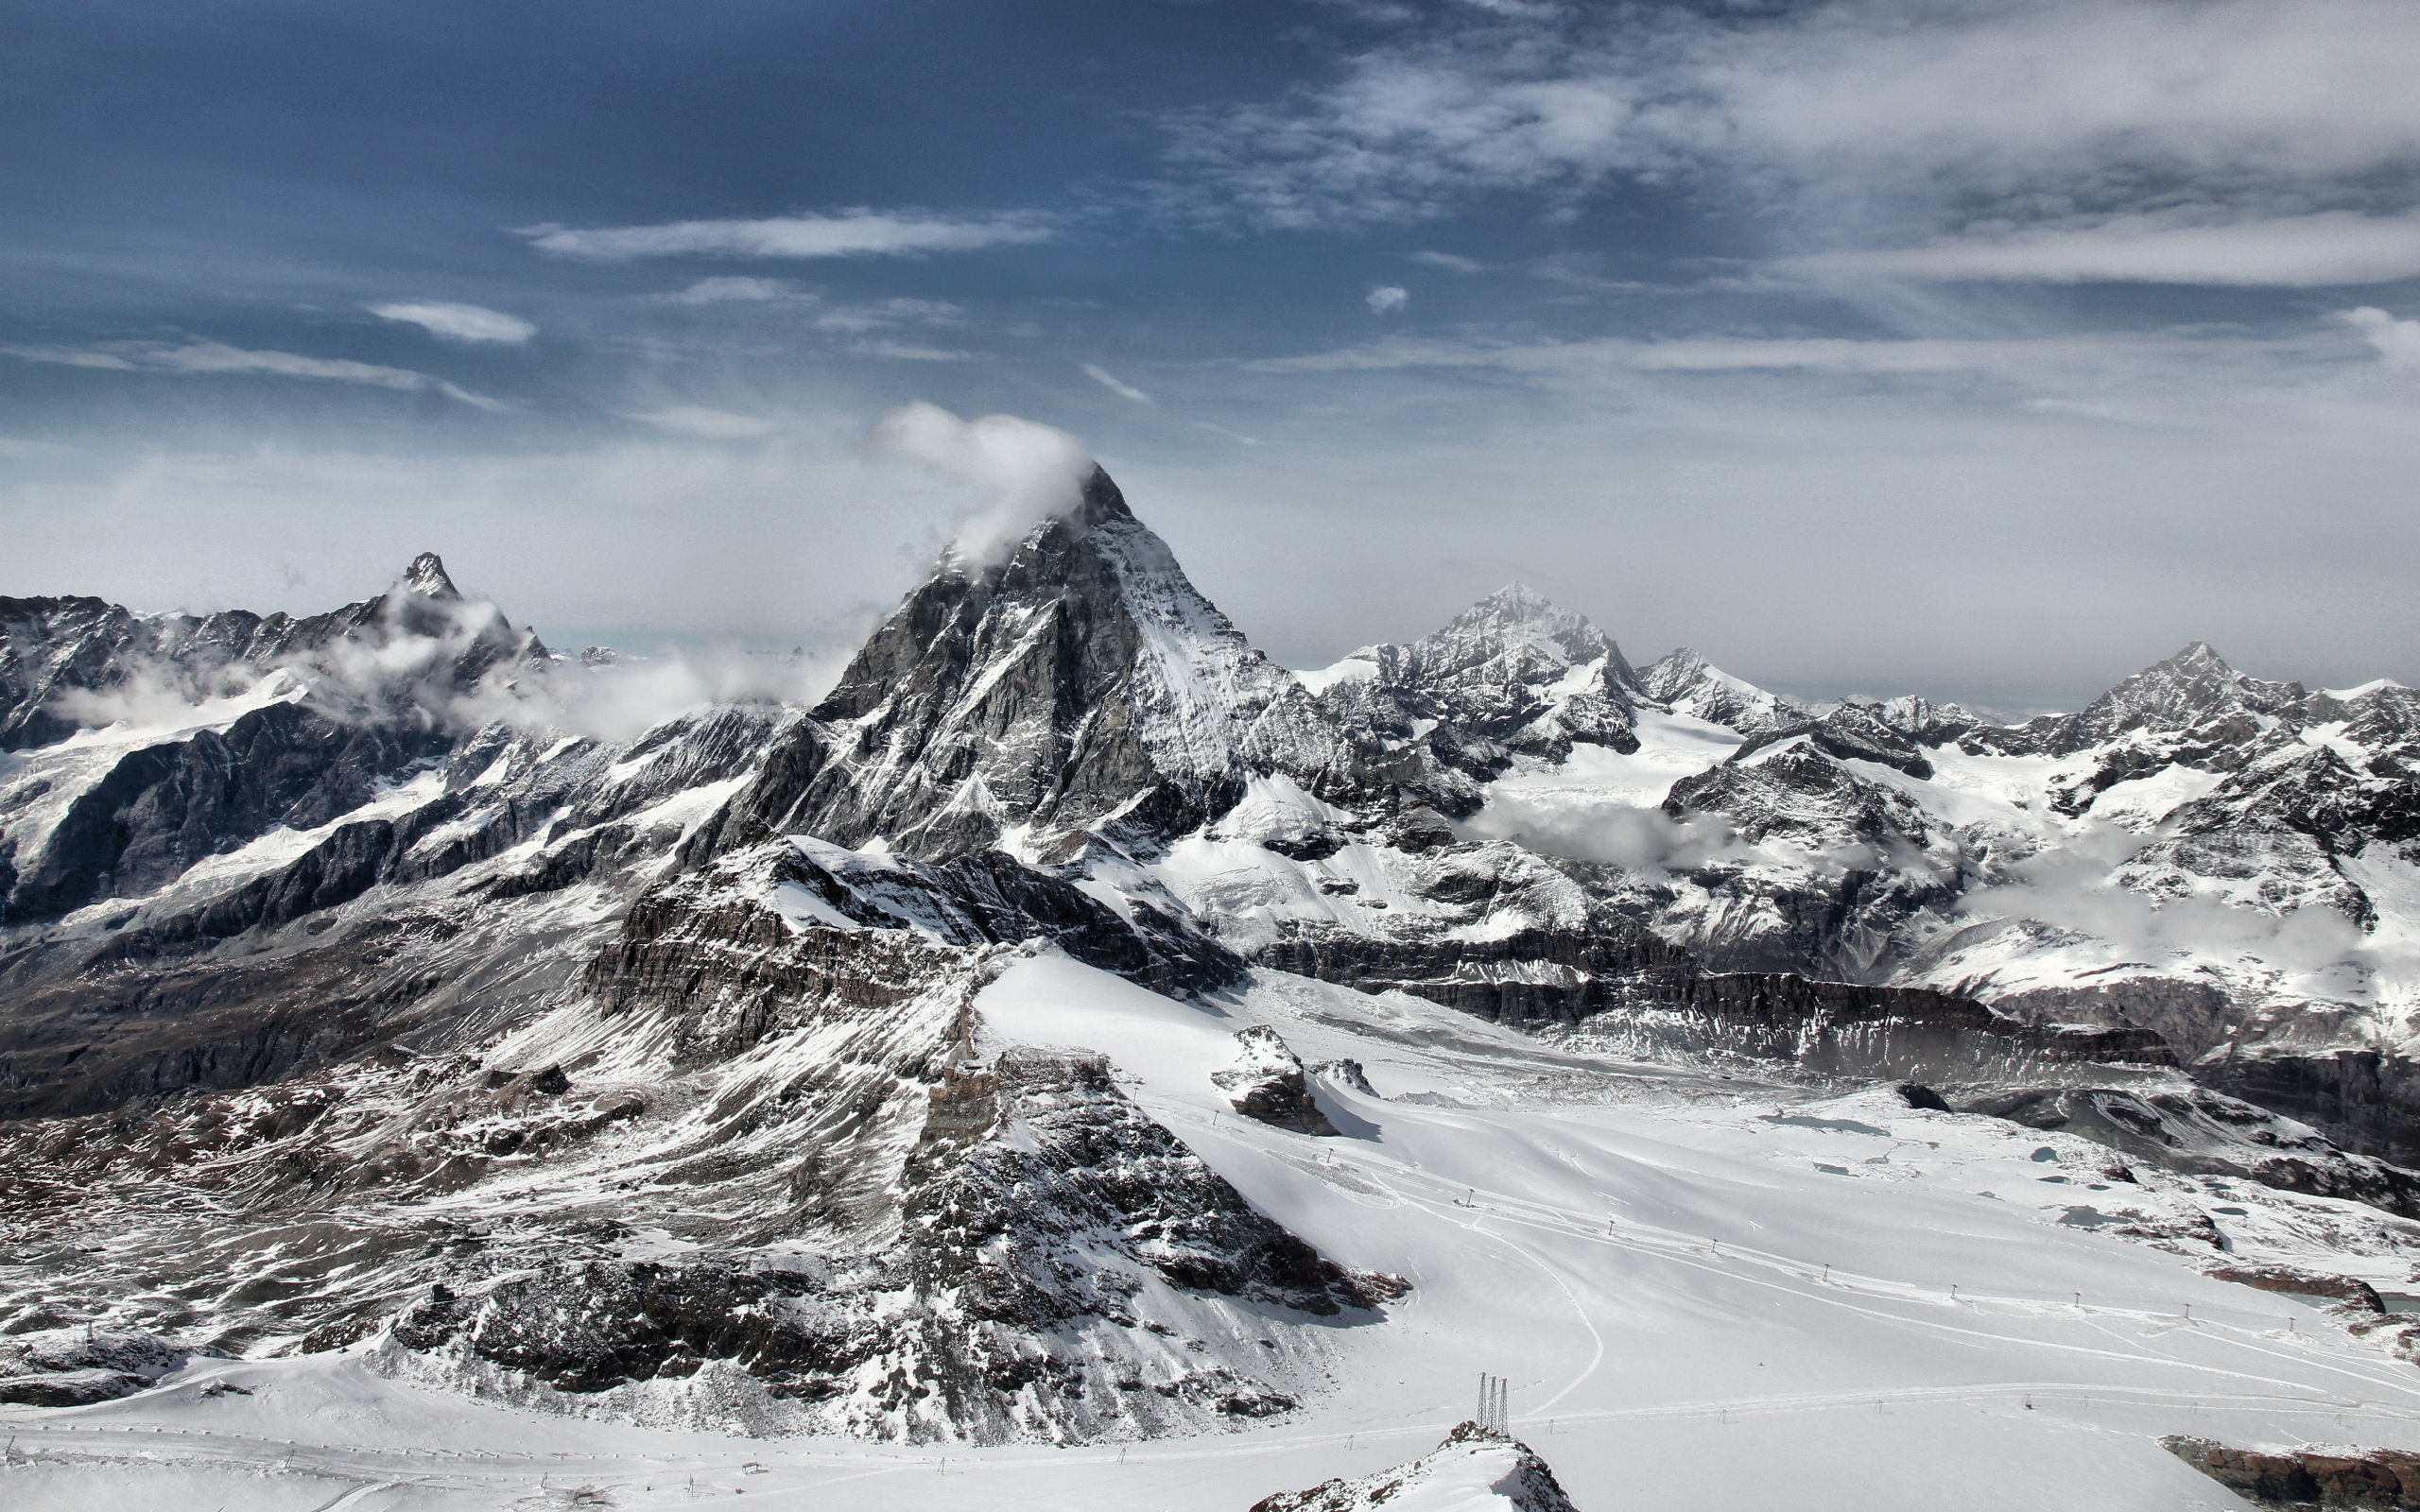 Res: 2560x1600, Mountains Snowy Wallpaper Free Download.